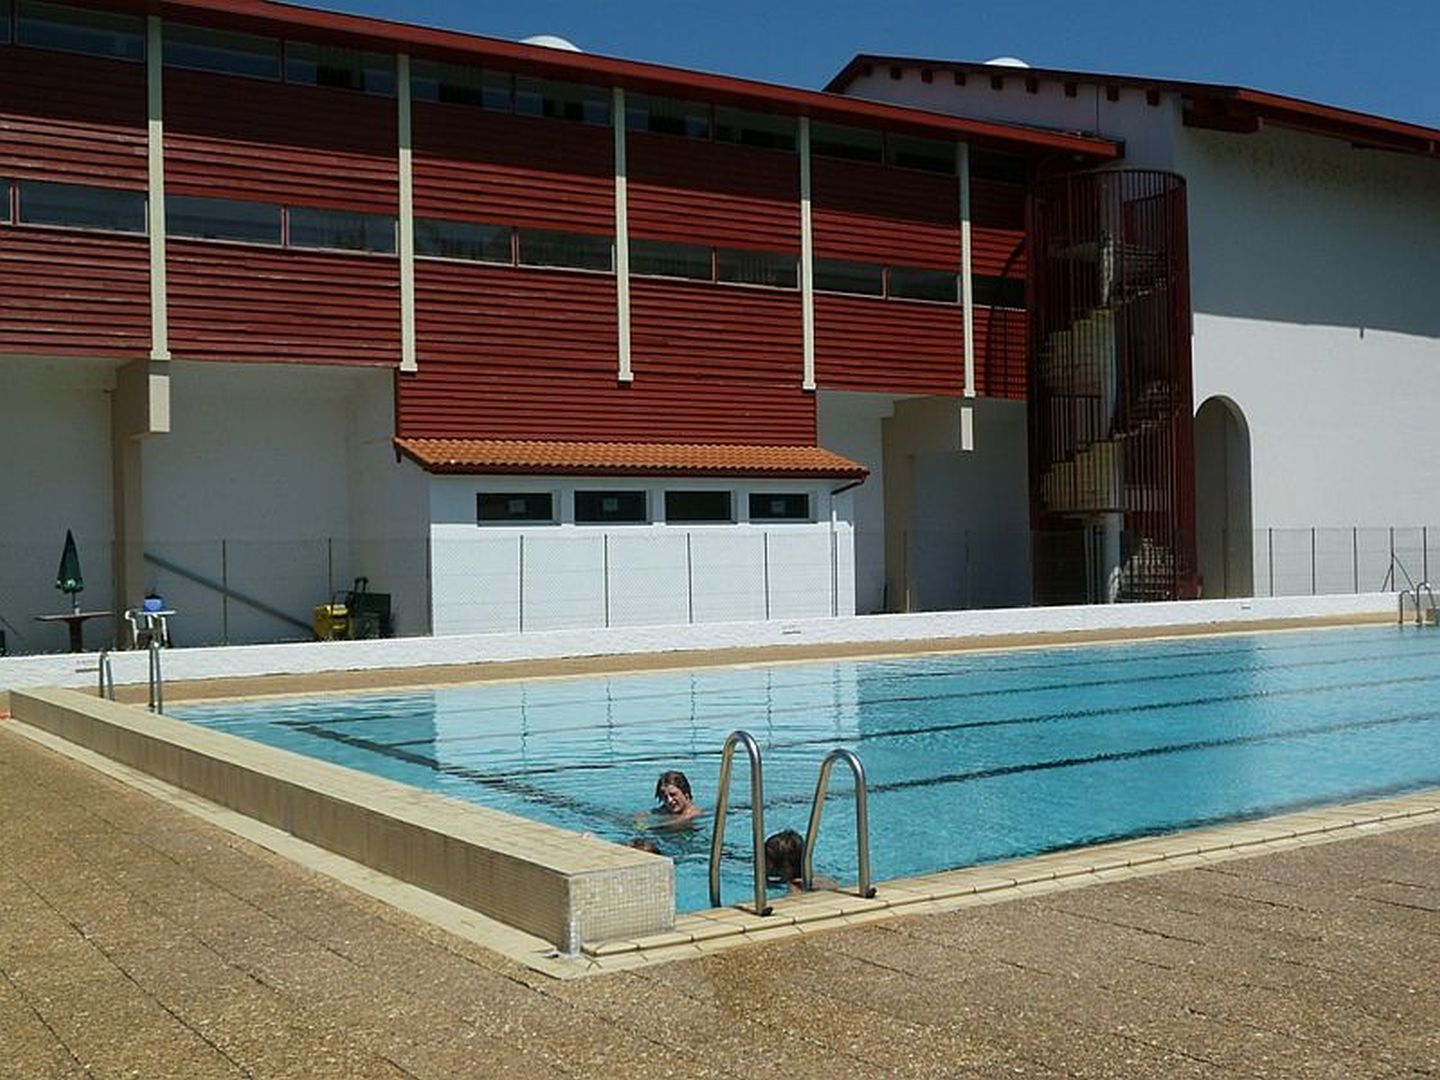 Piscine complexe sportif de baigorry saint tienne de - Amenagement piscine design saint etienne ...